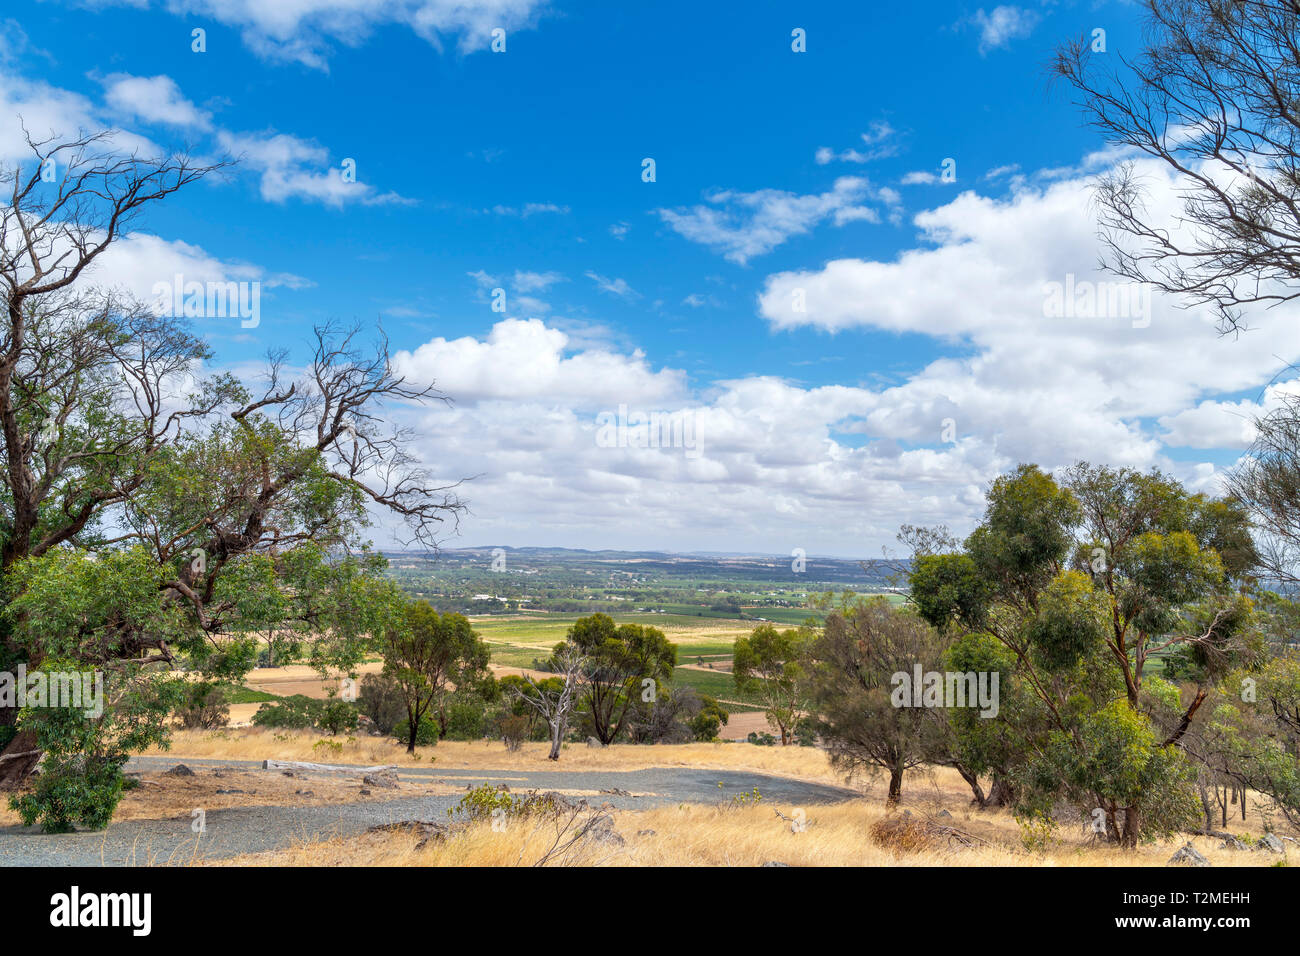 View over the Barossa Valley wine growing region from Mengler Hill Lookout, Bethany, South Australia, Australia - Stock Image